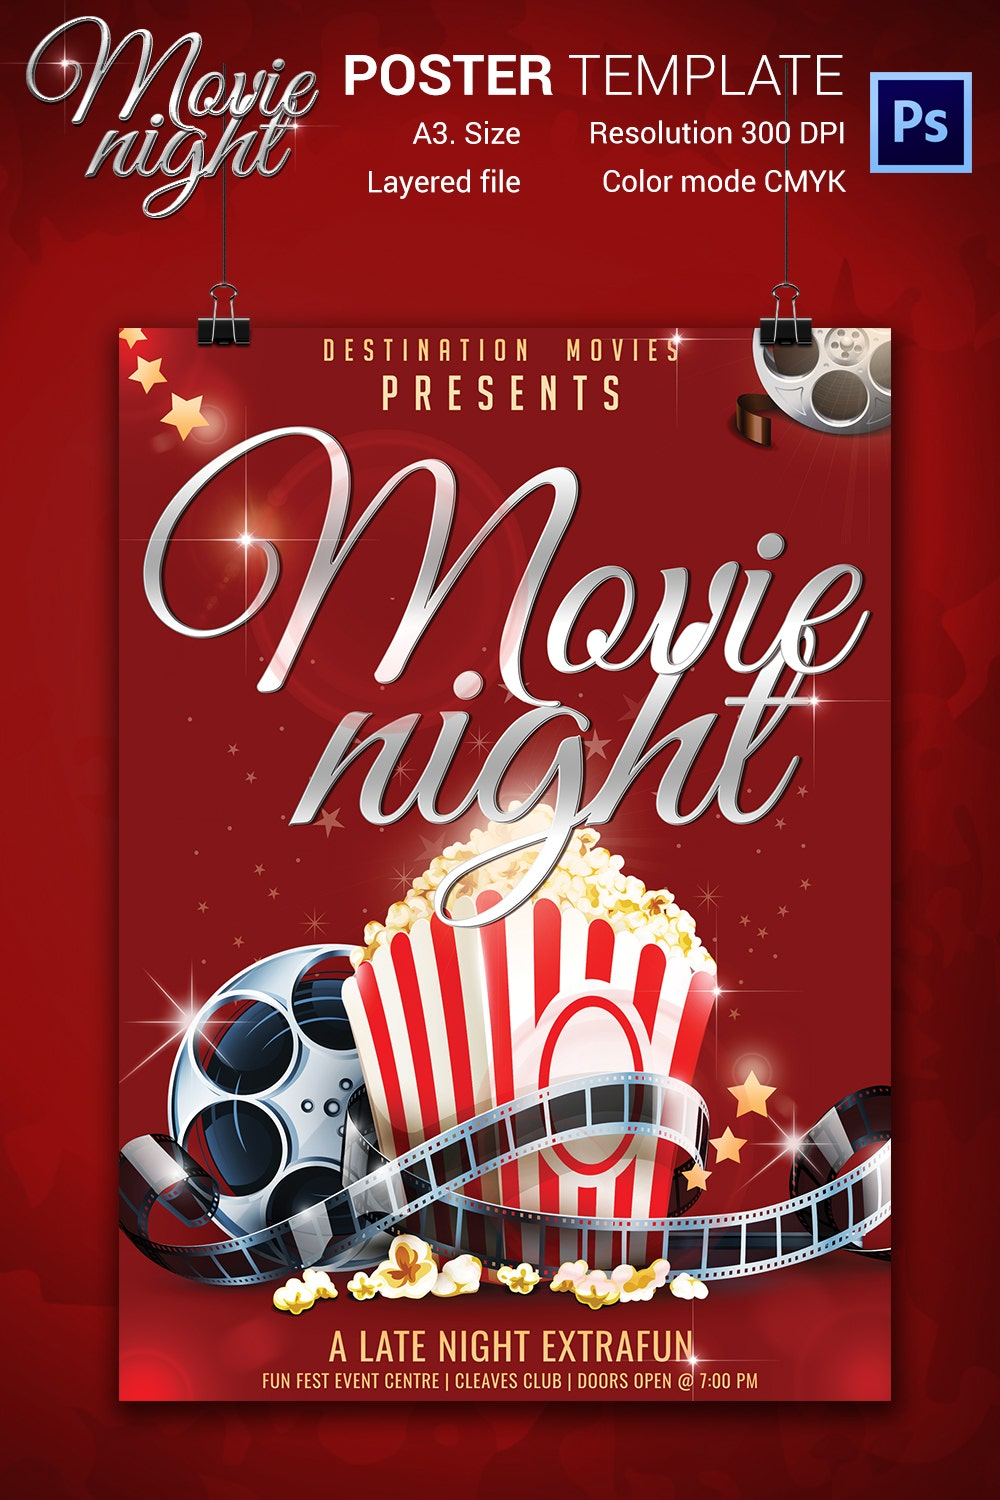 movie night flyer jpg psd format elegant movie night poster template